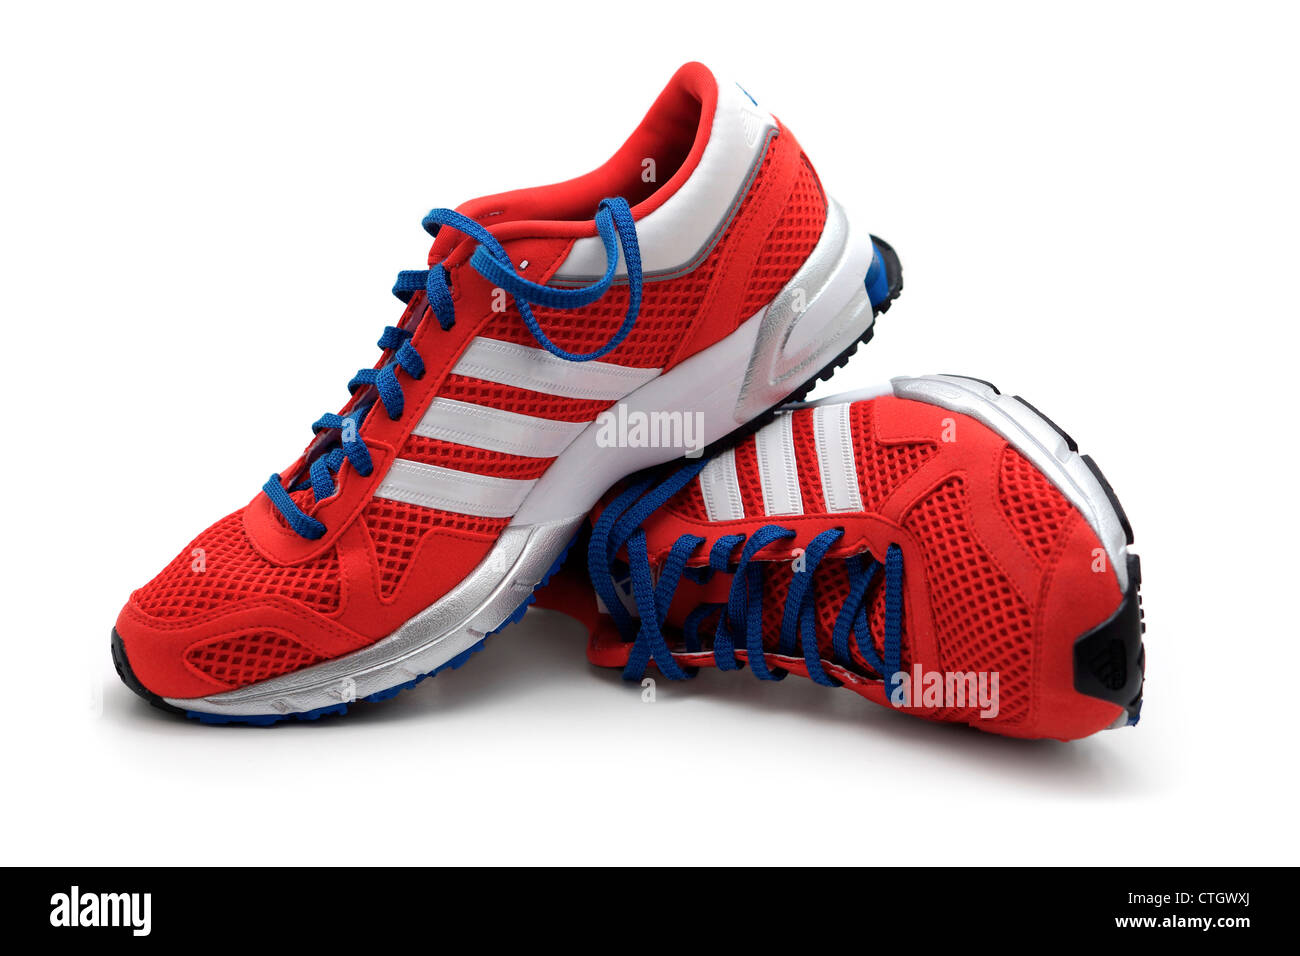 trainers-sneakers-running-shoes-CTGWXJ.j